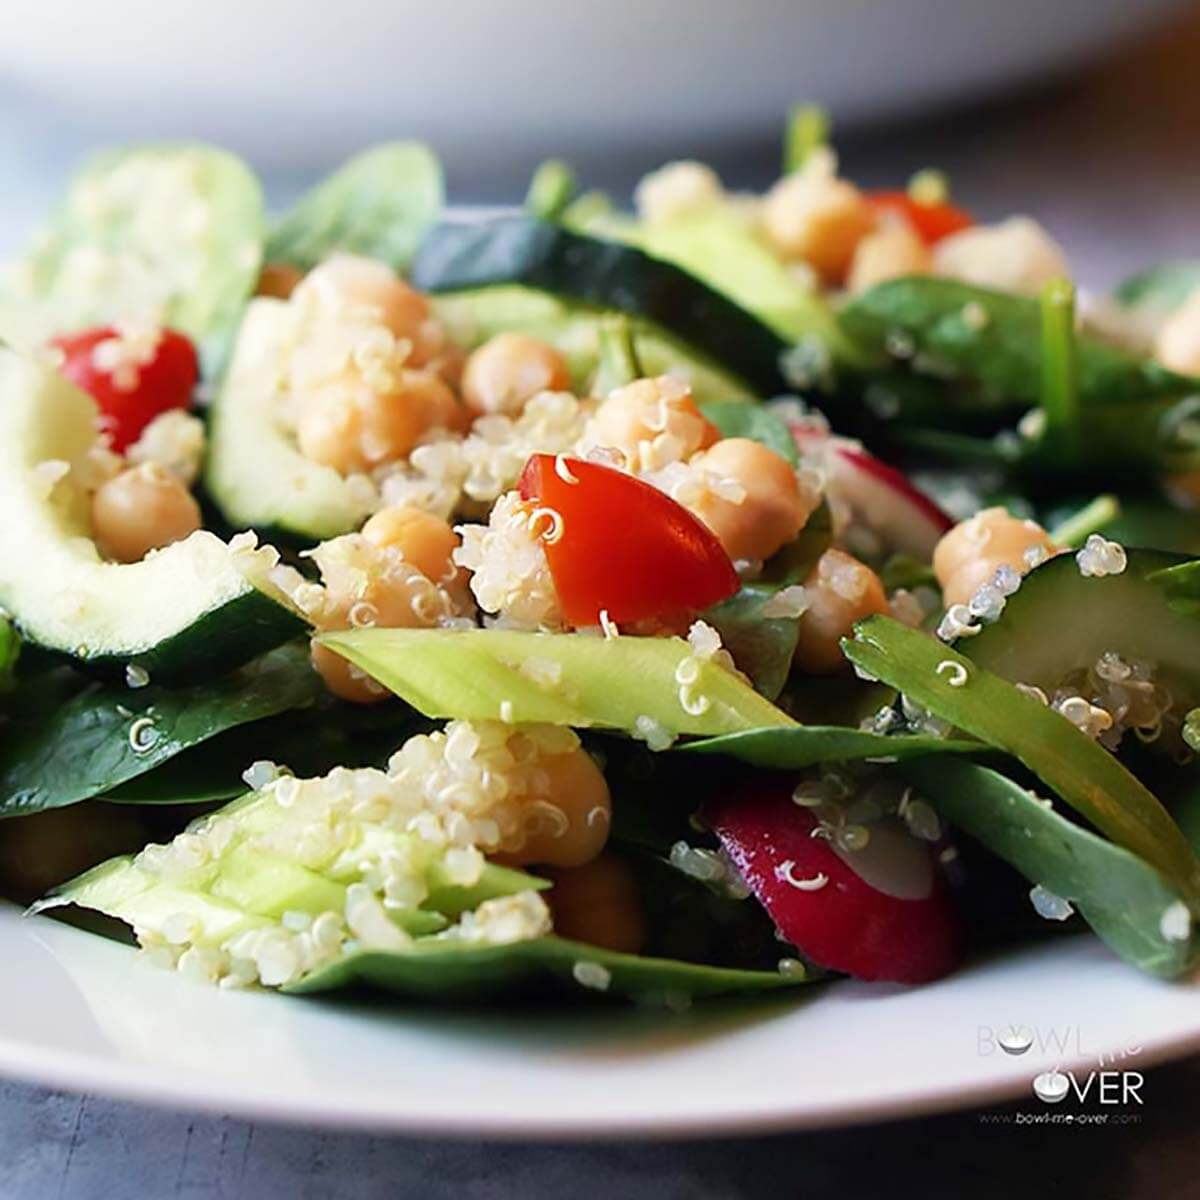 Spinach Salad on white plate.